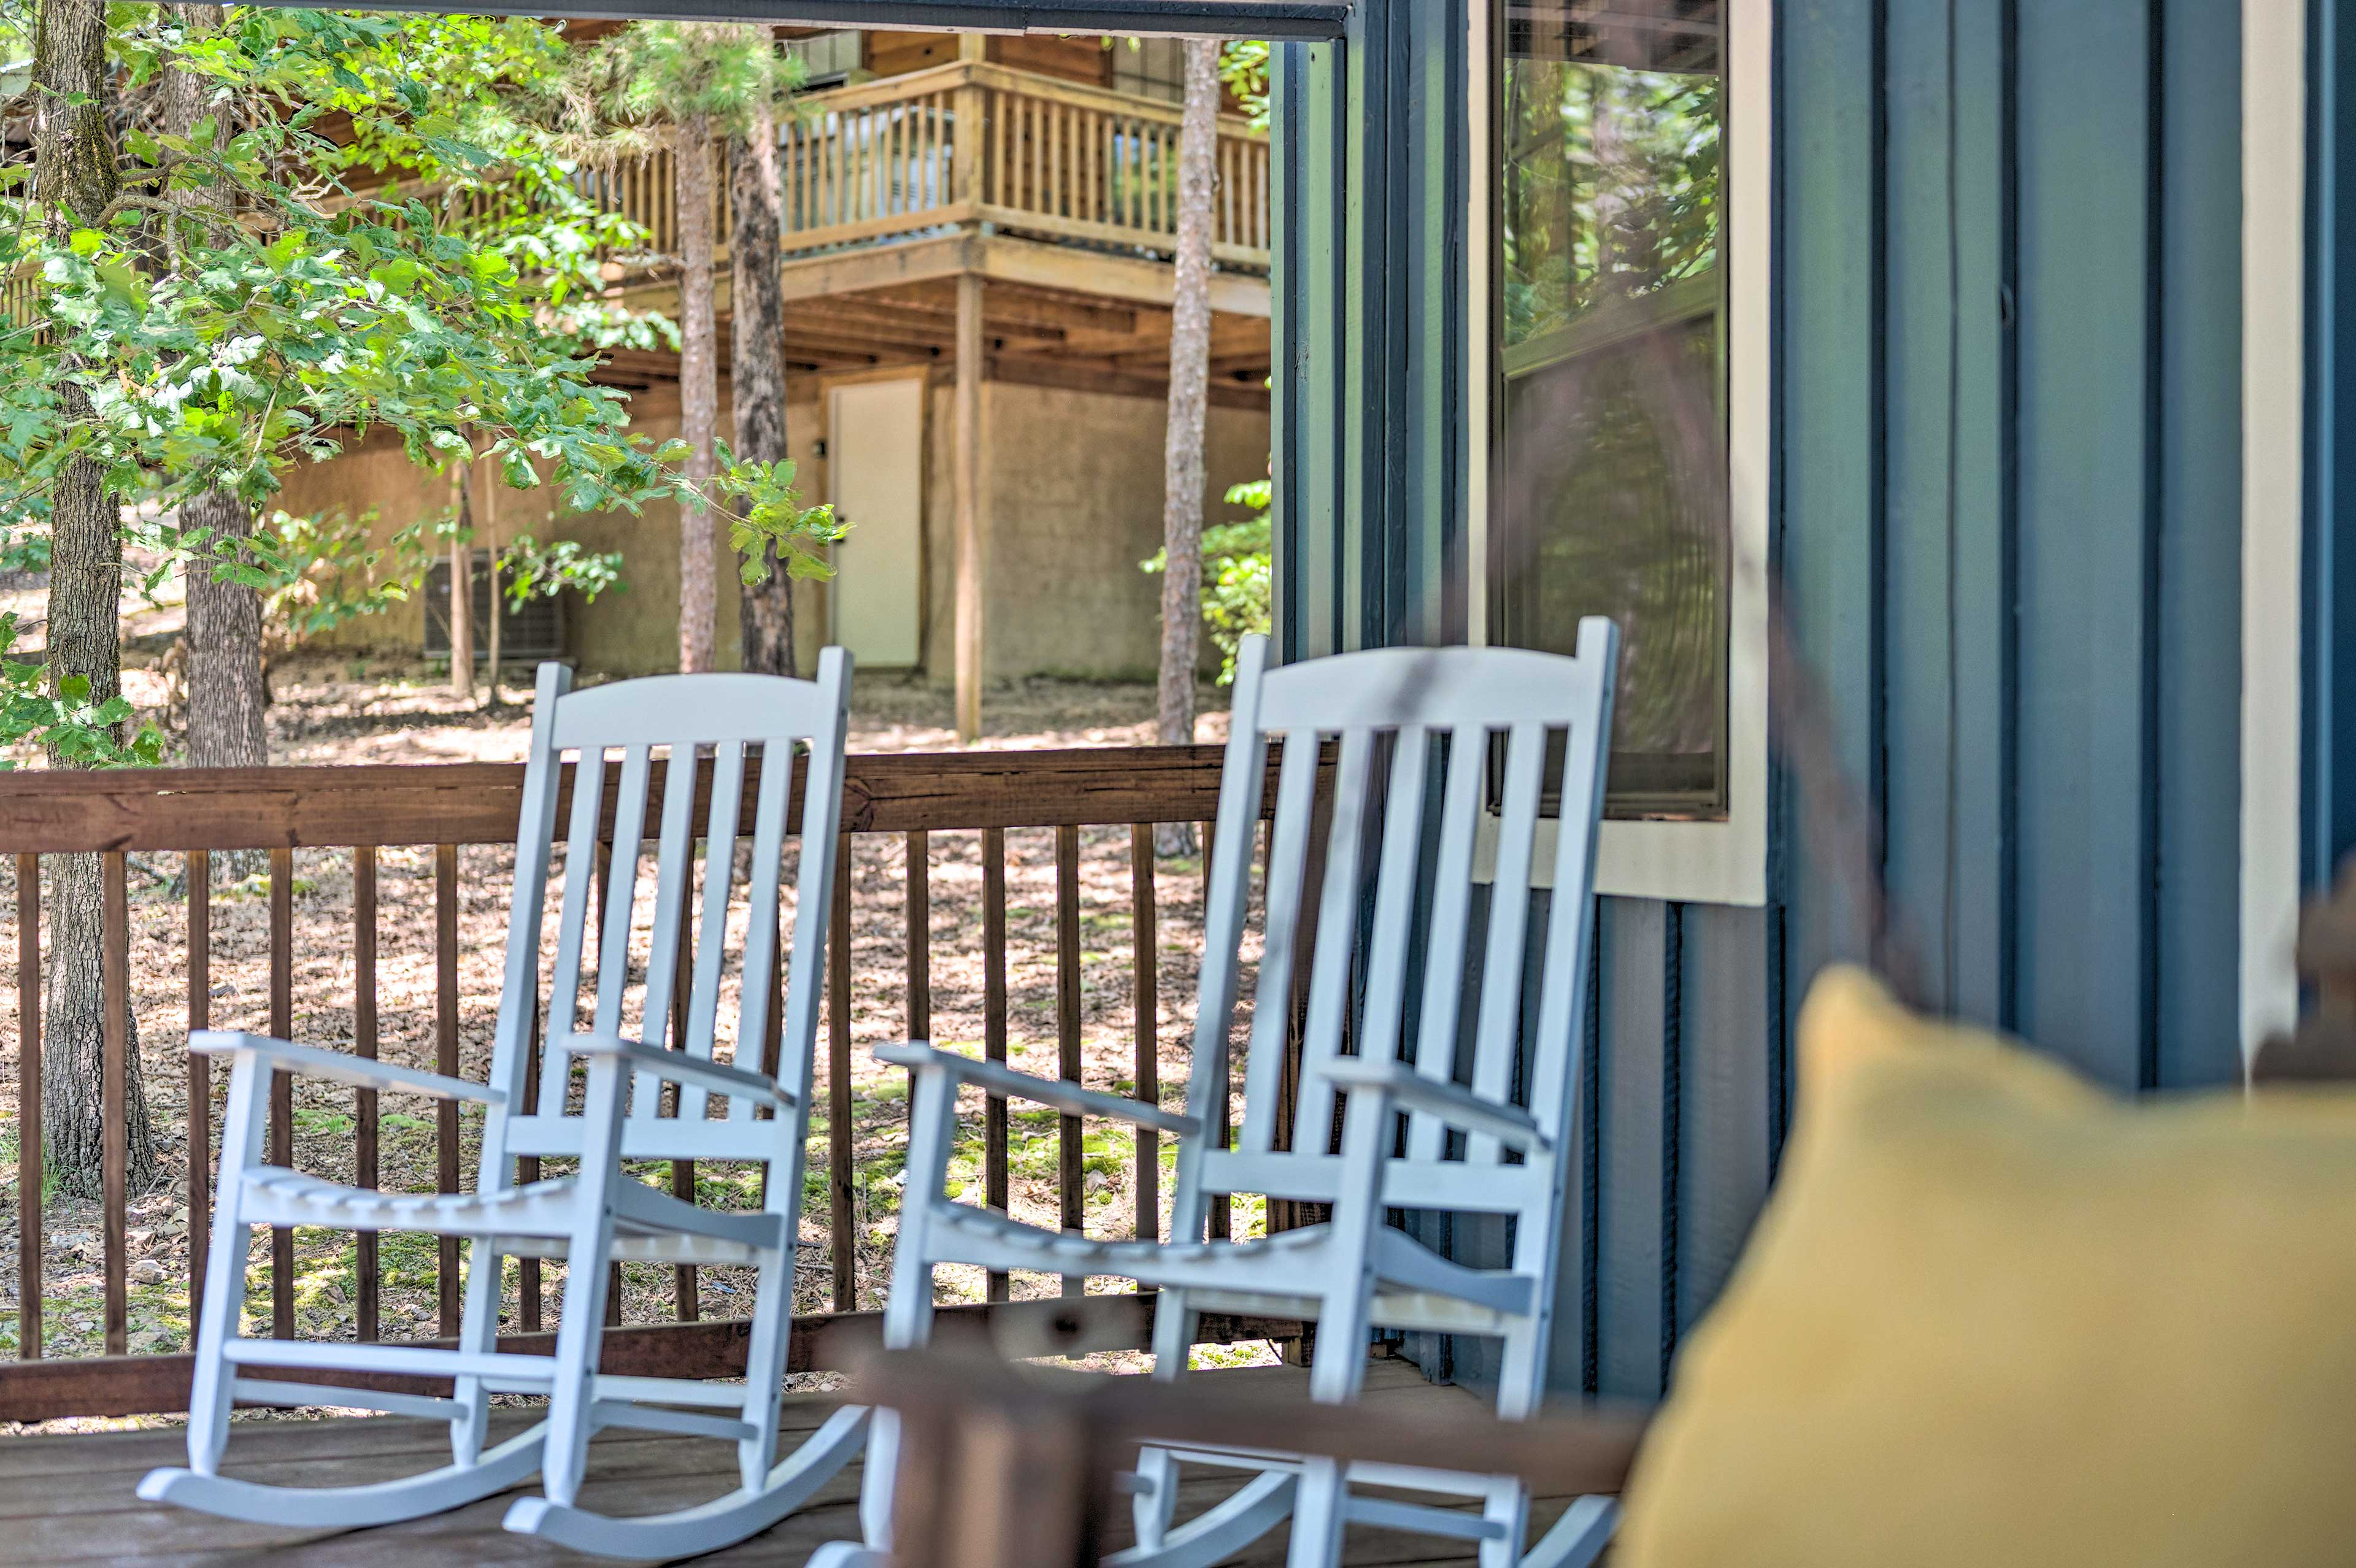 Rock your cares away on the porch!